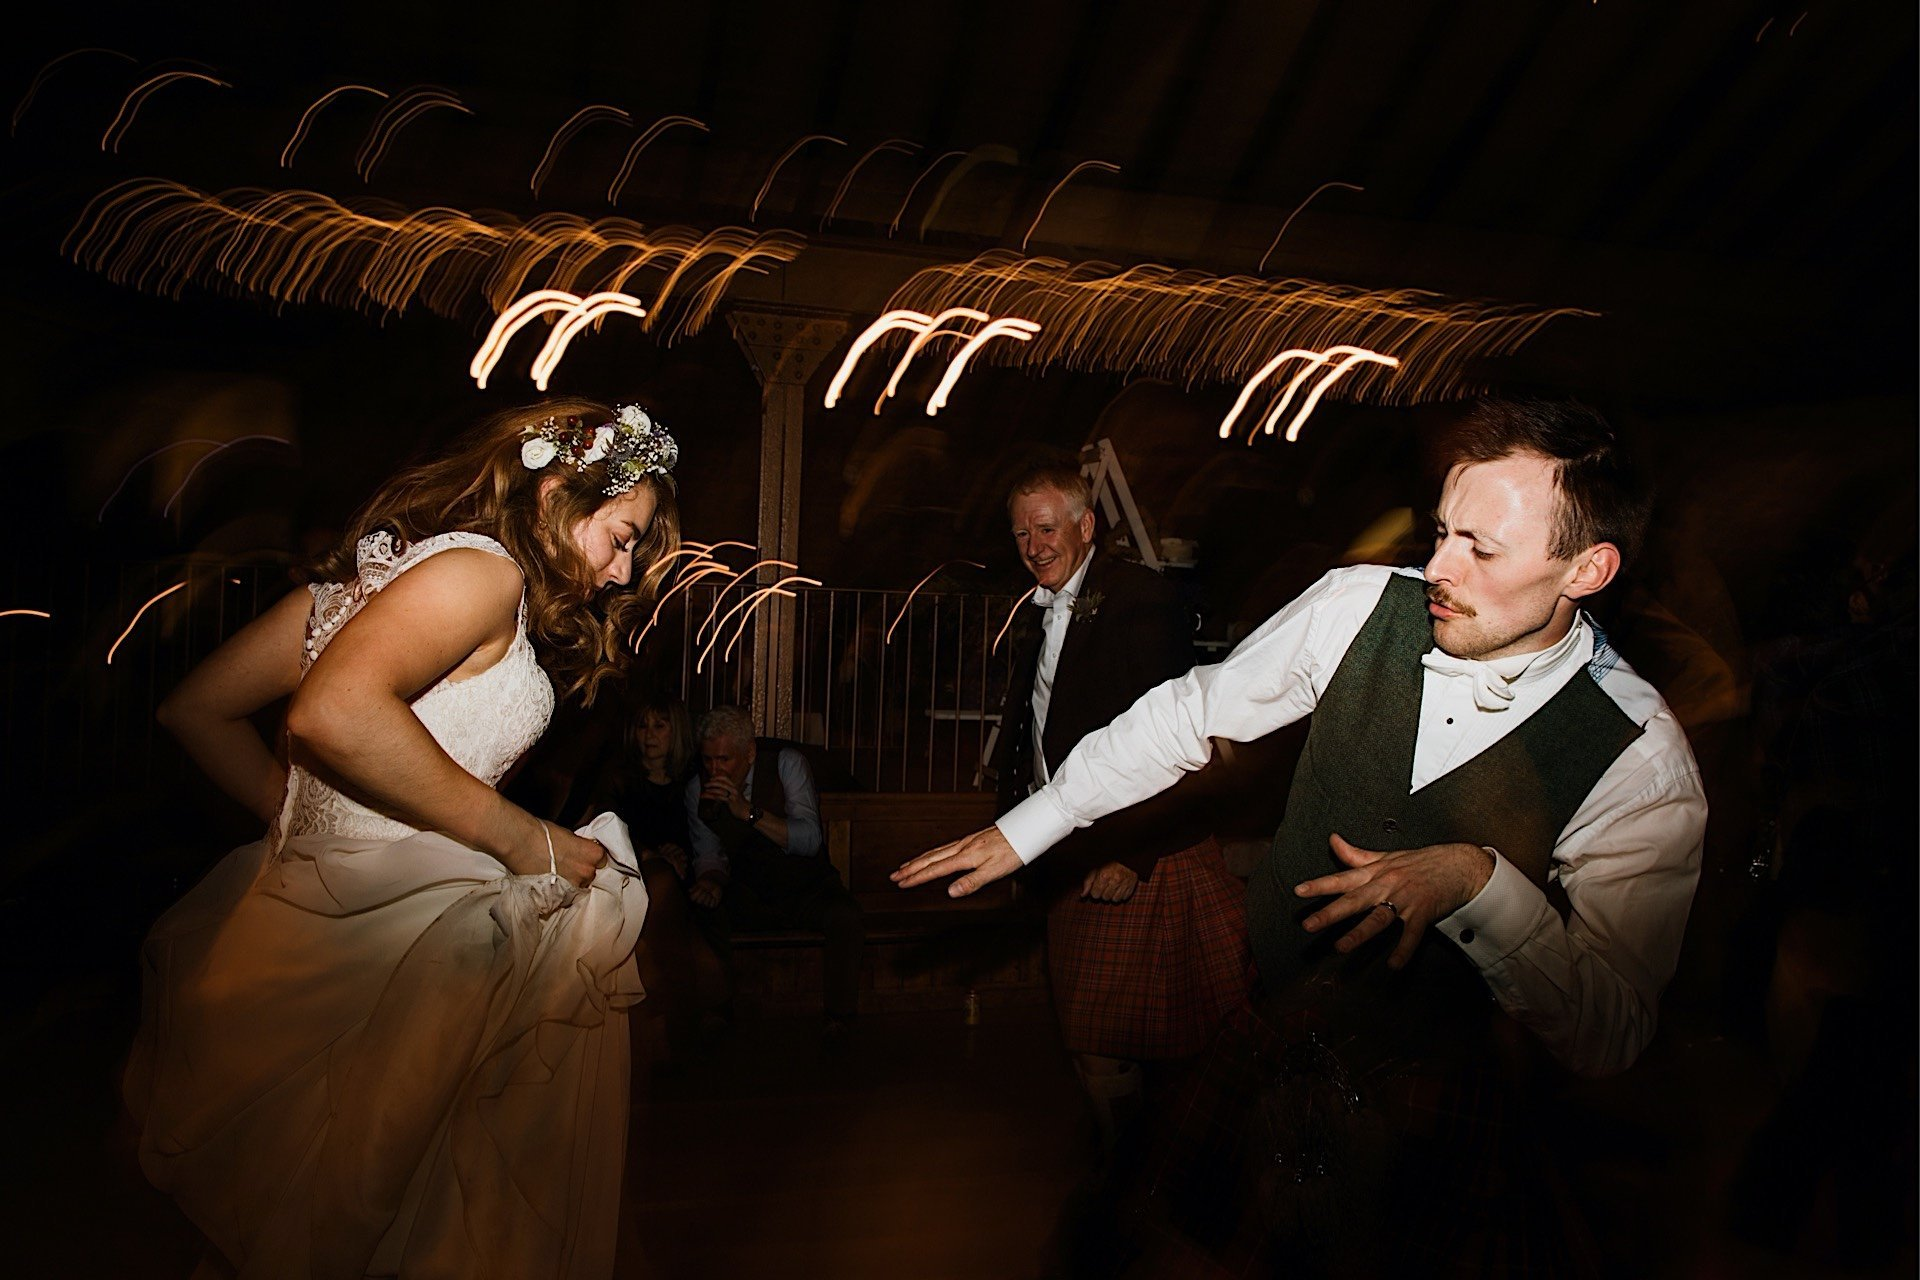 bride and groom dancing after the wedding ceremony and reception at the Rhynd, barn wedding venue in leuchars